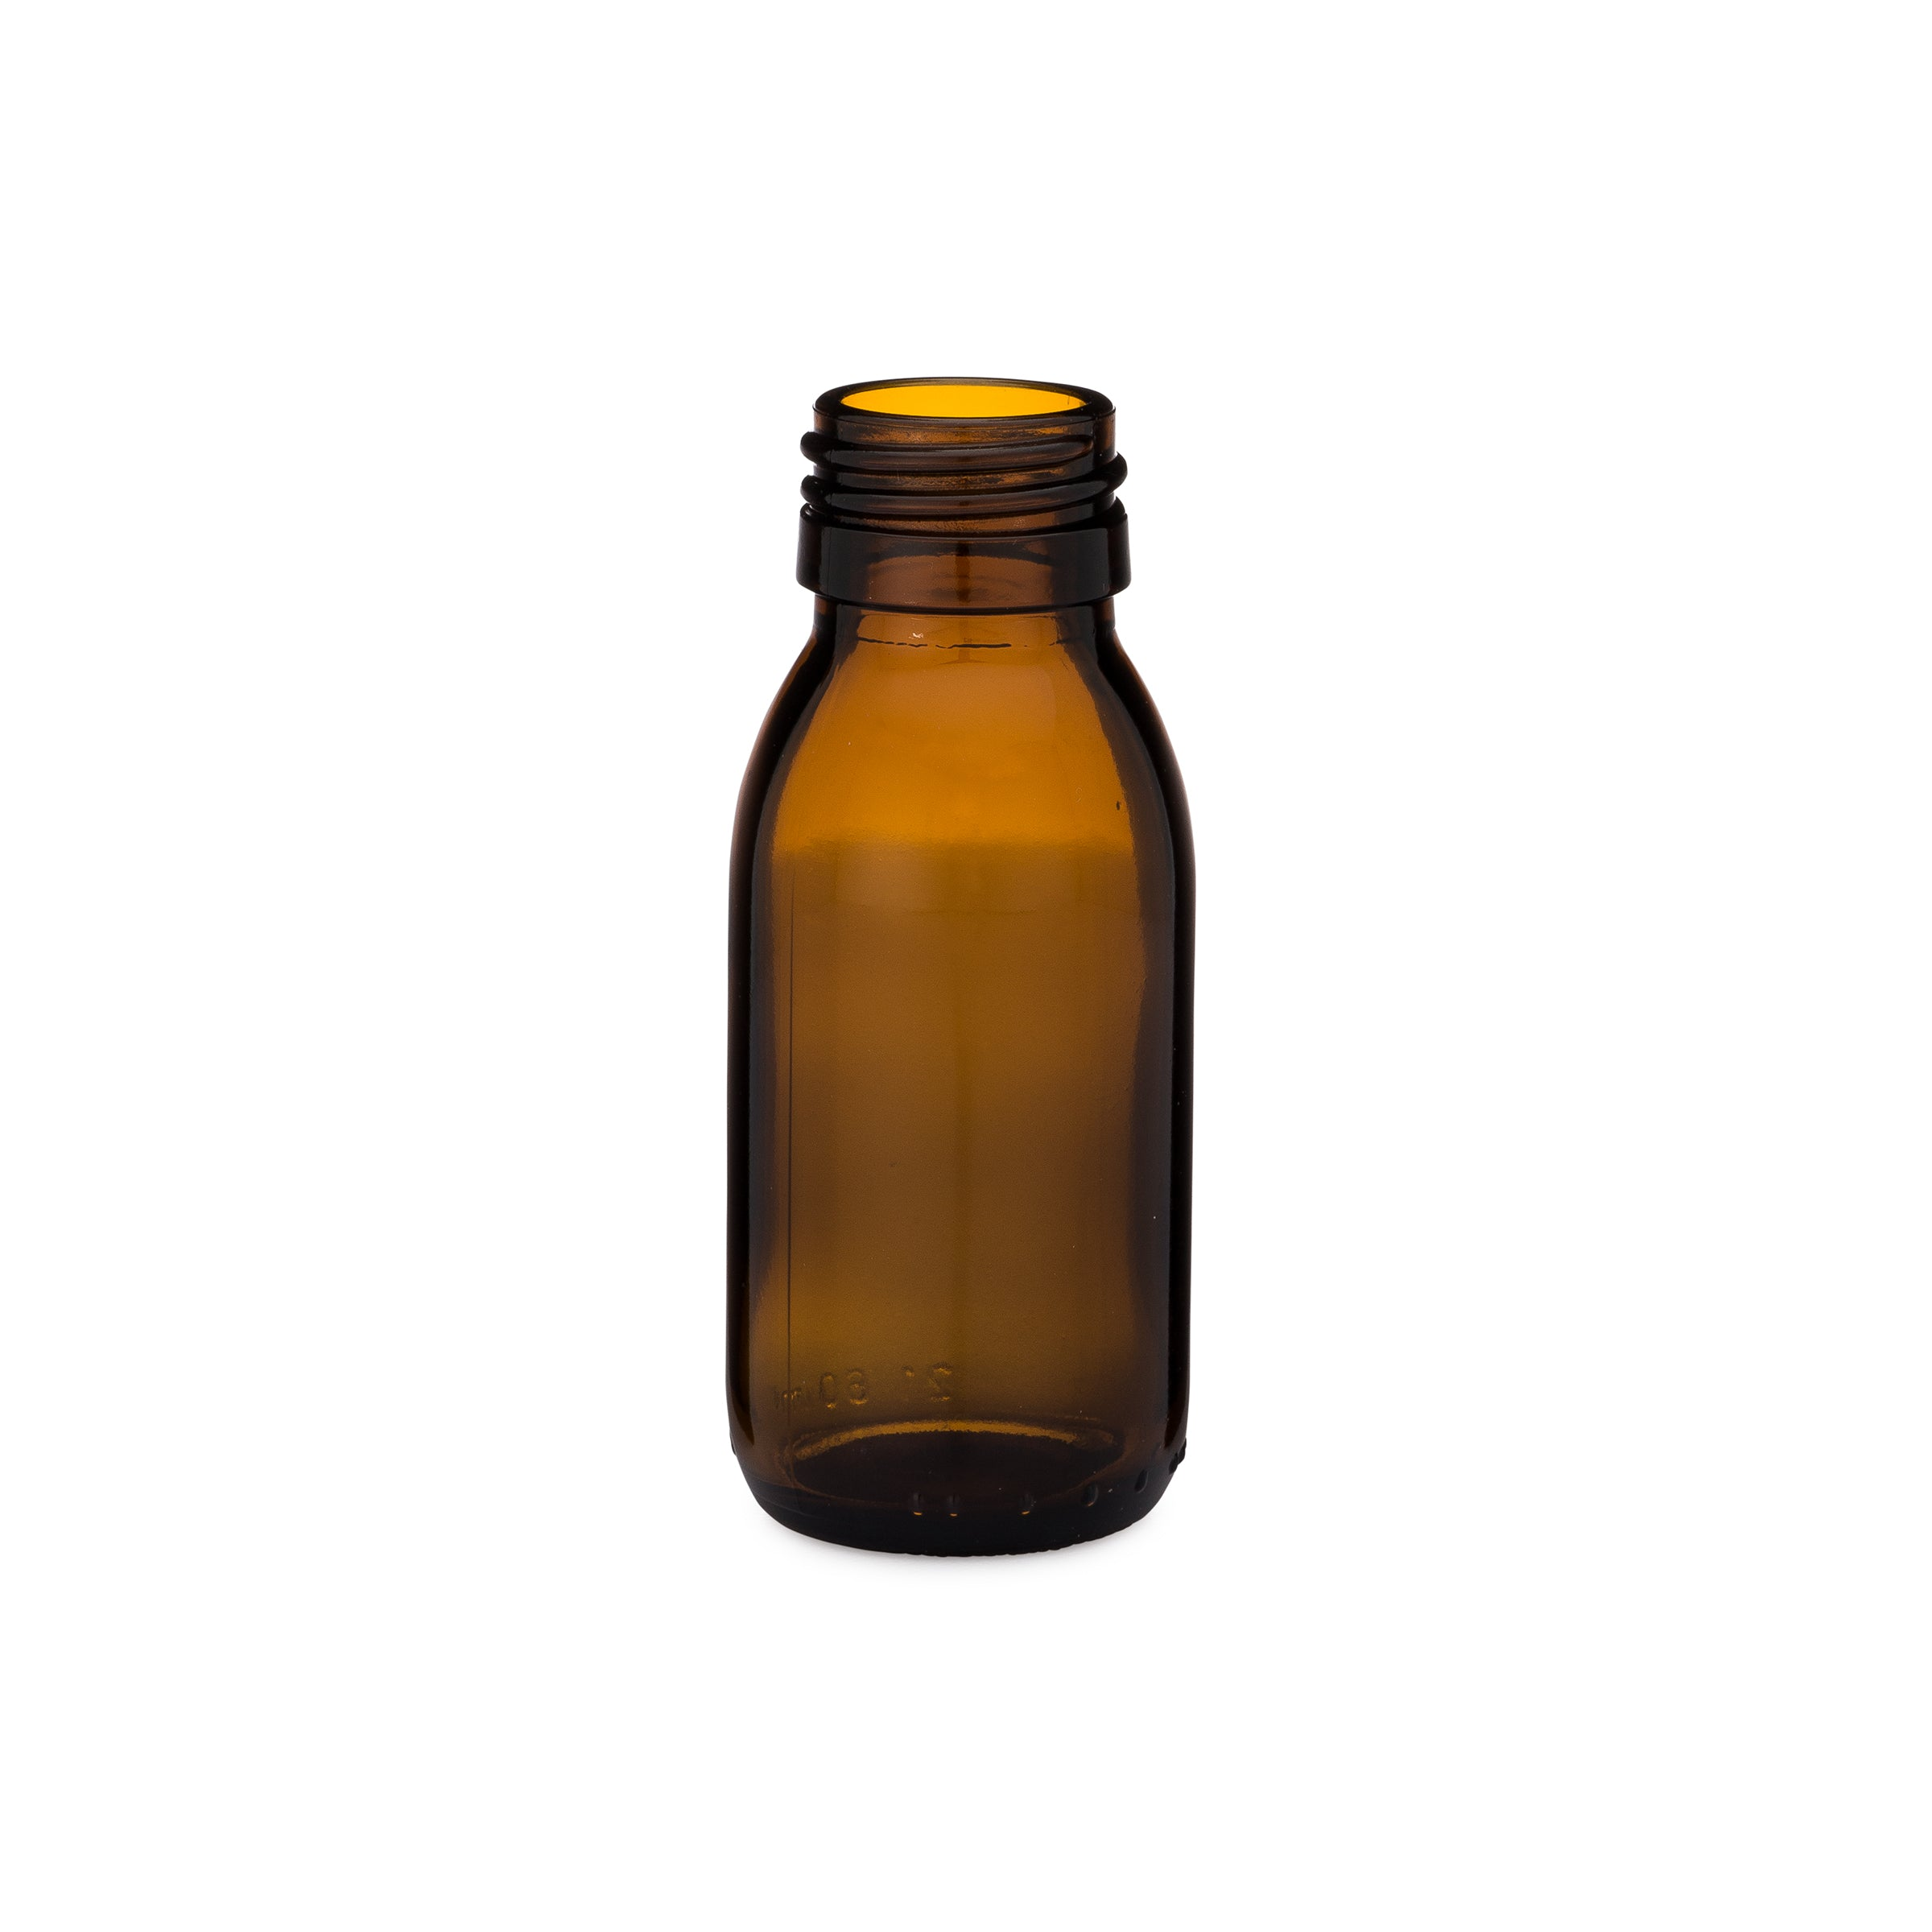 60ml Amber Syrup Bottle - 4-19094